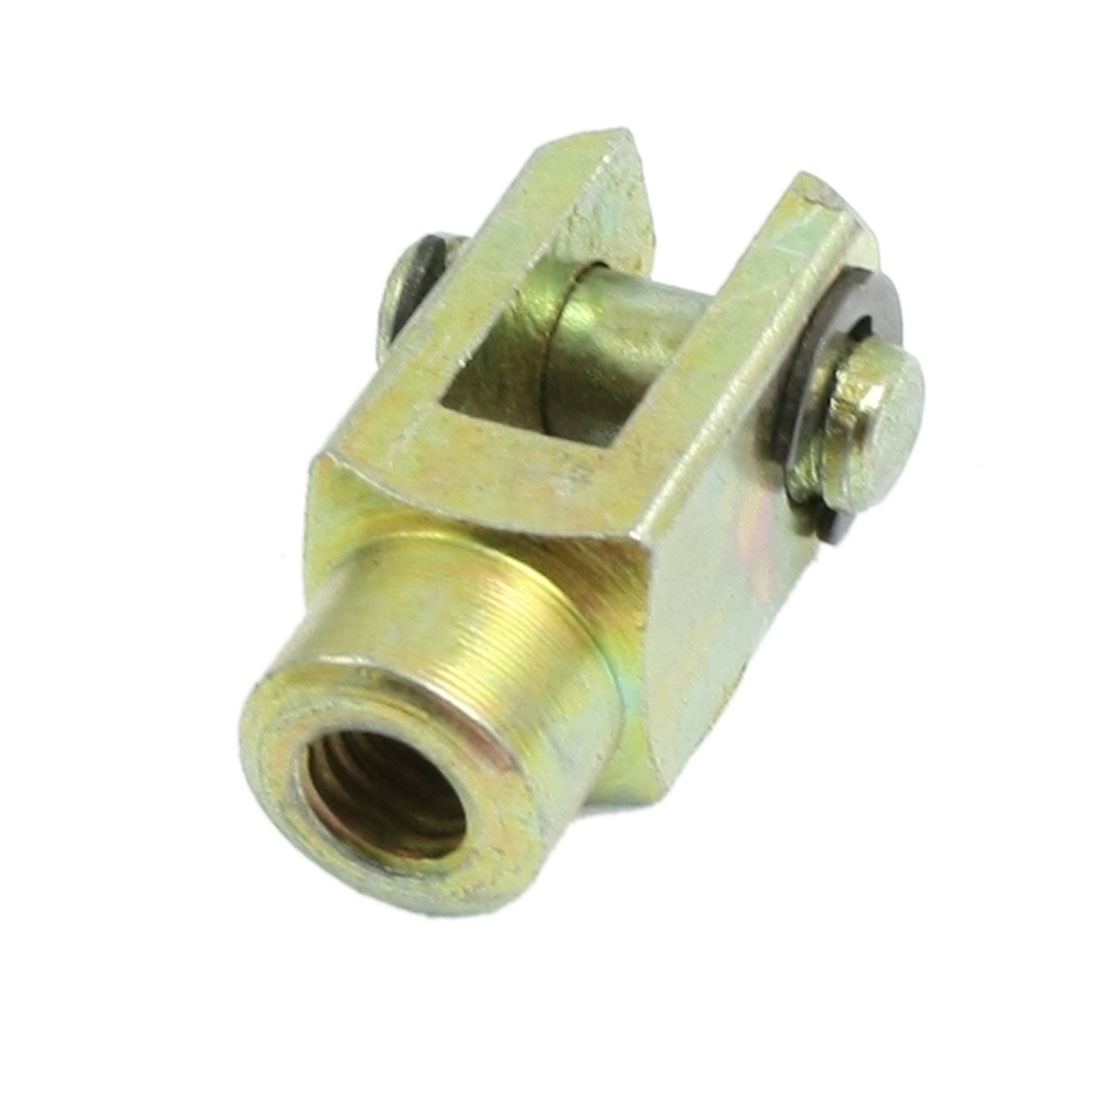 M6 6mm Female Thread Metal Y Joint Pneumatic Cylinder Piston Rod Clevis